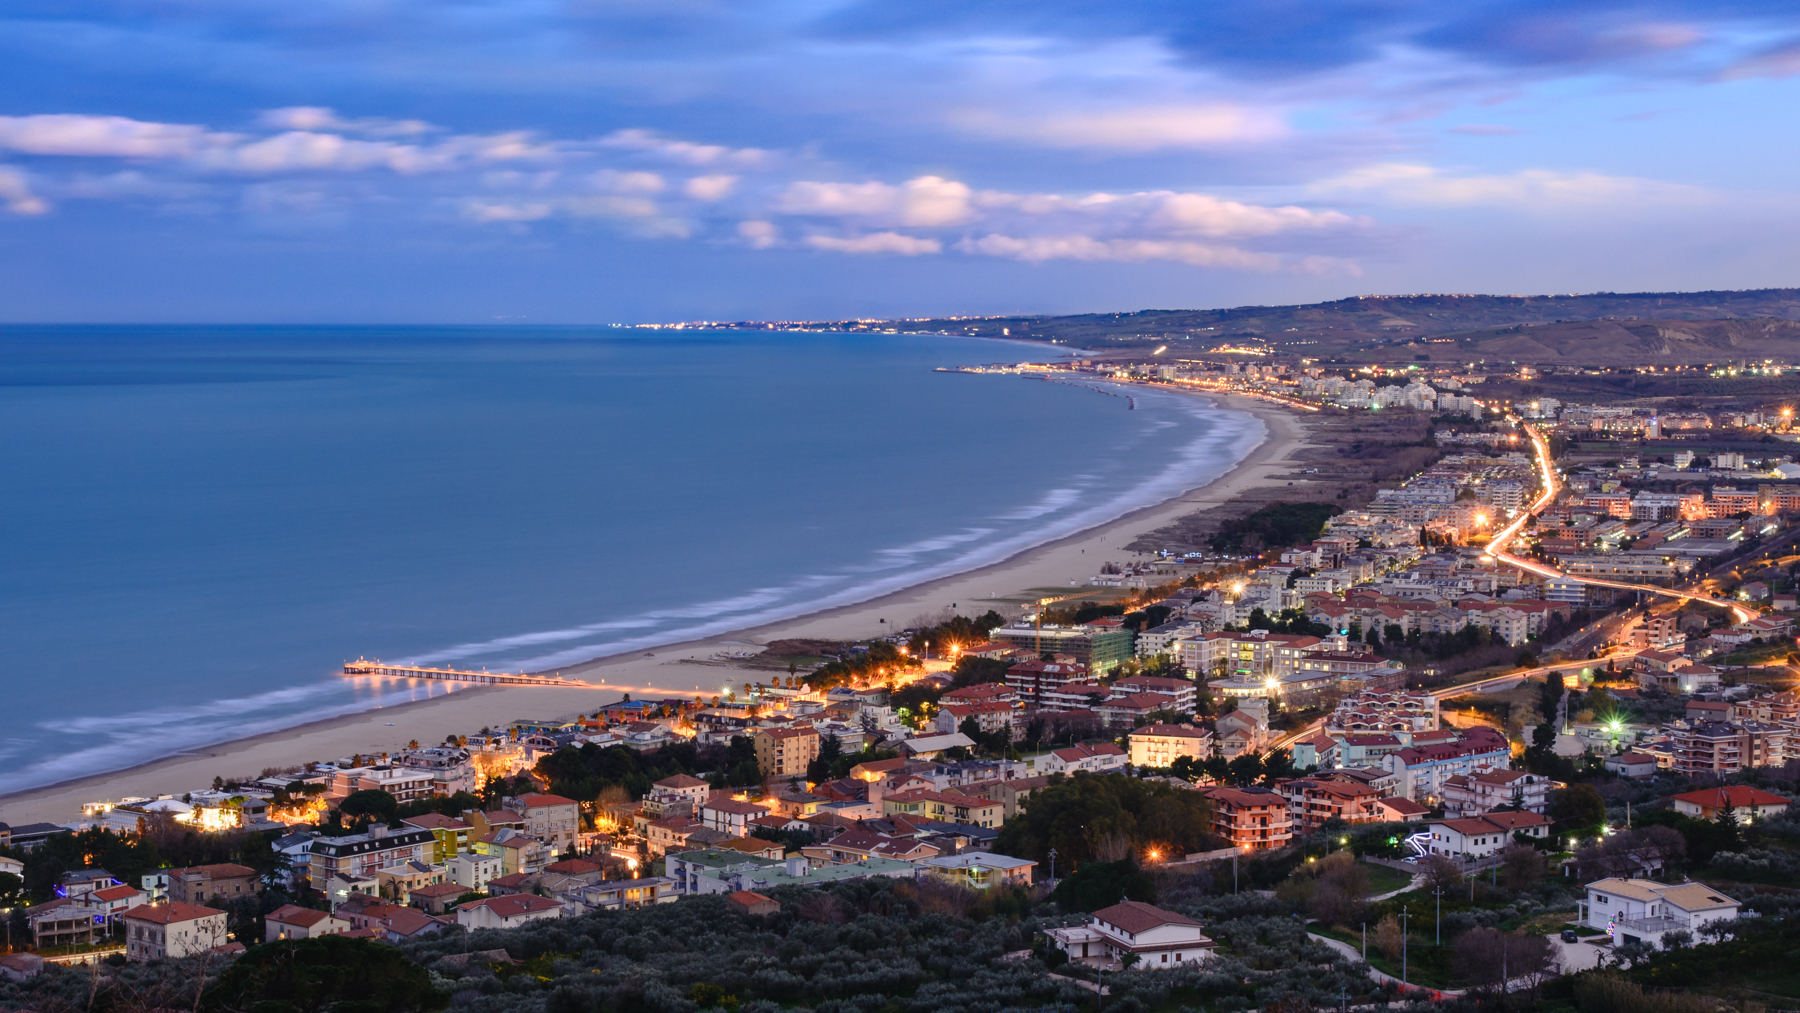 The Gulf of Vasto from the Belvedere San Michele...